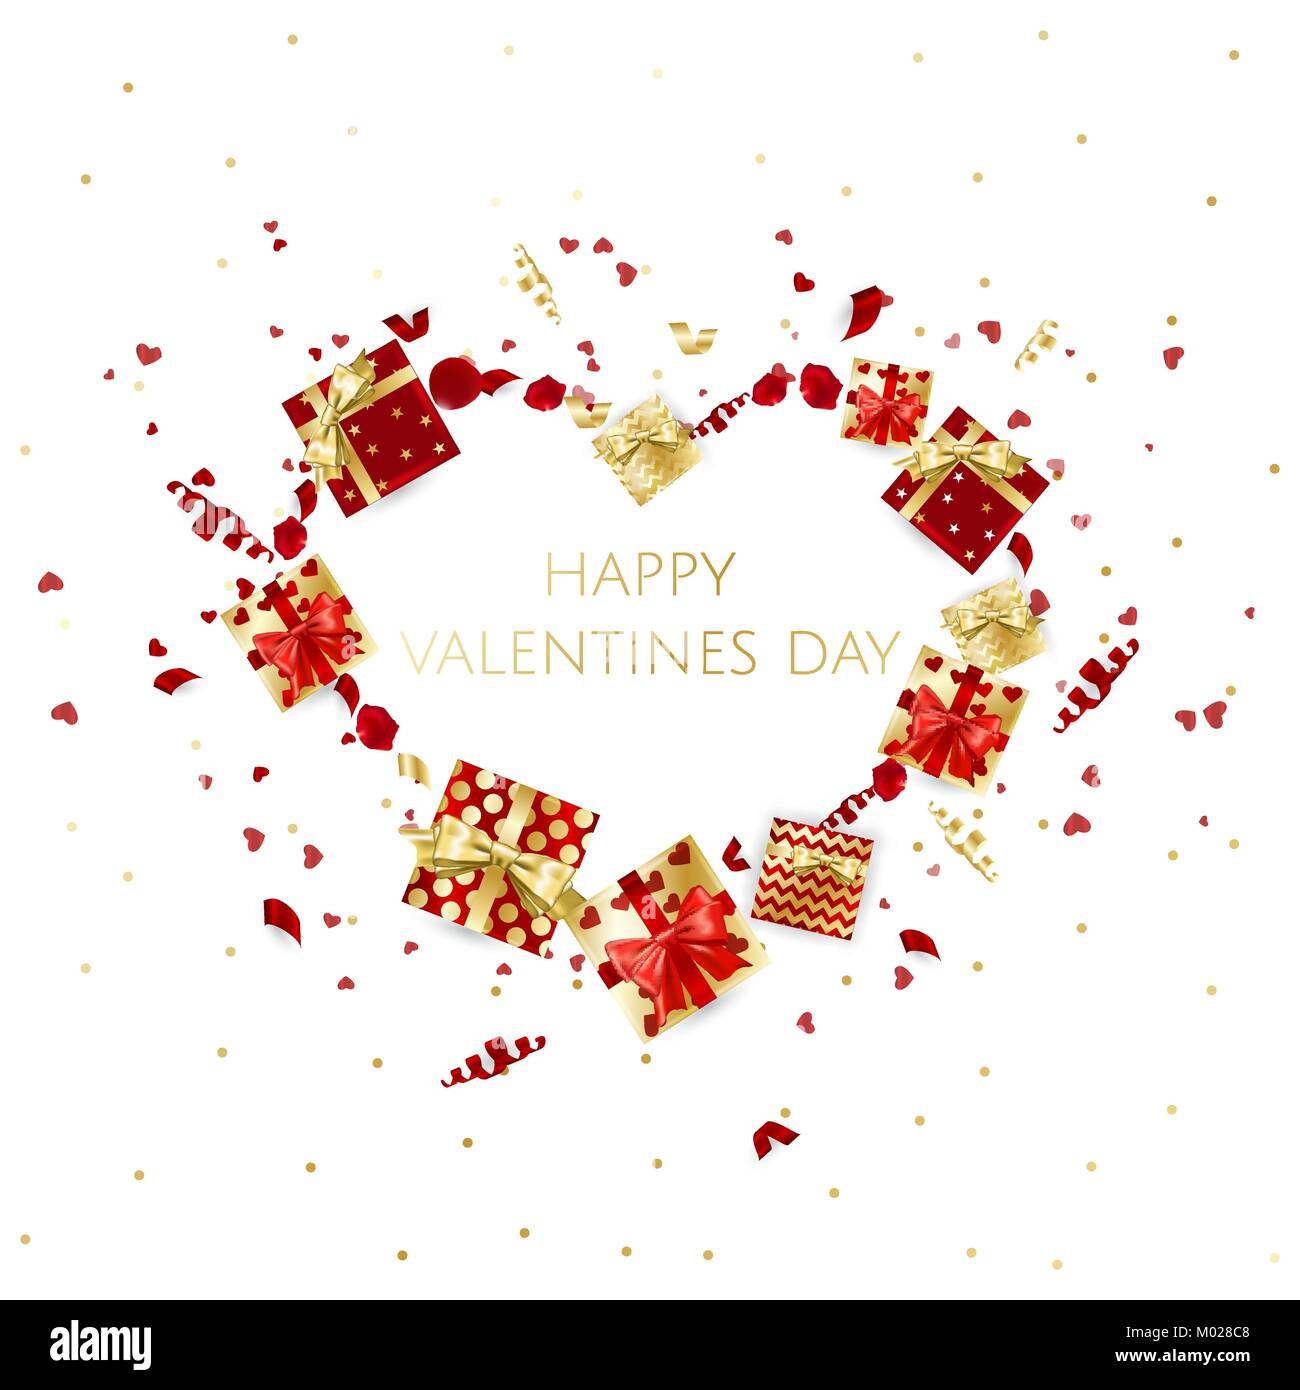 Valentines Day Background With Heart Vector Illustration Wallpaper